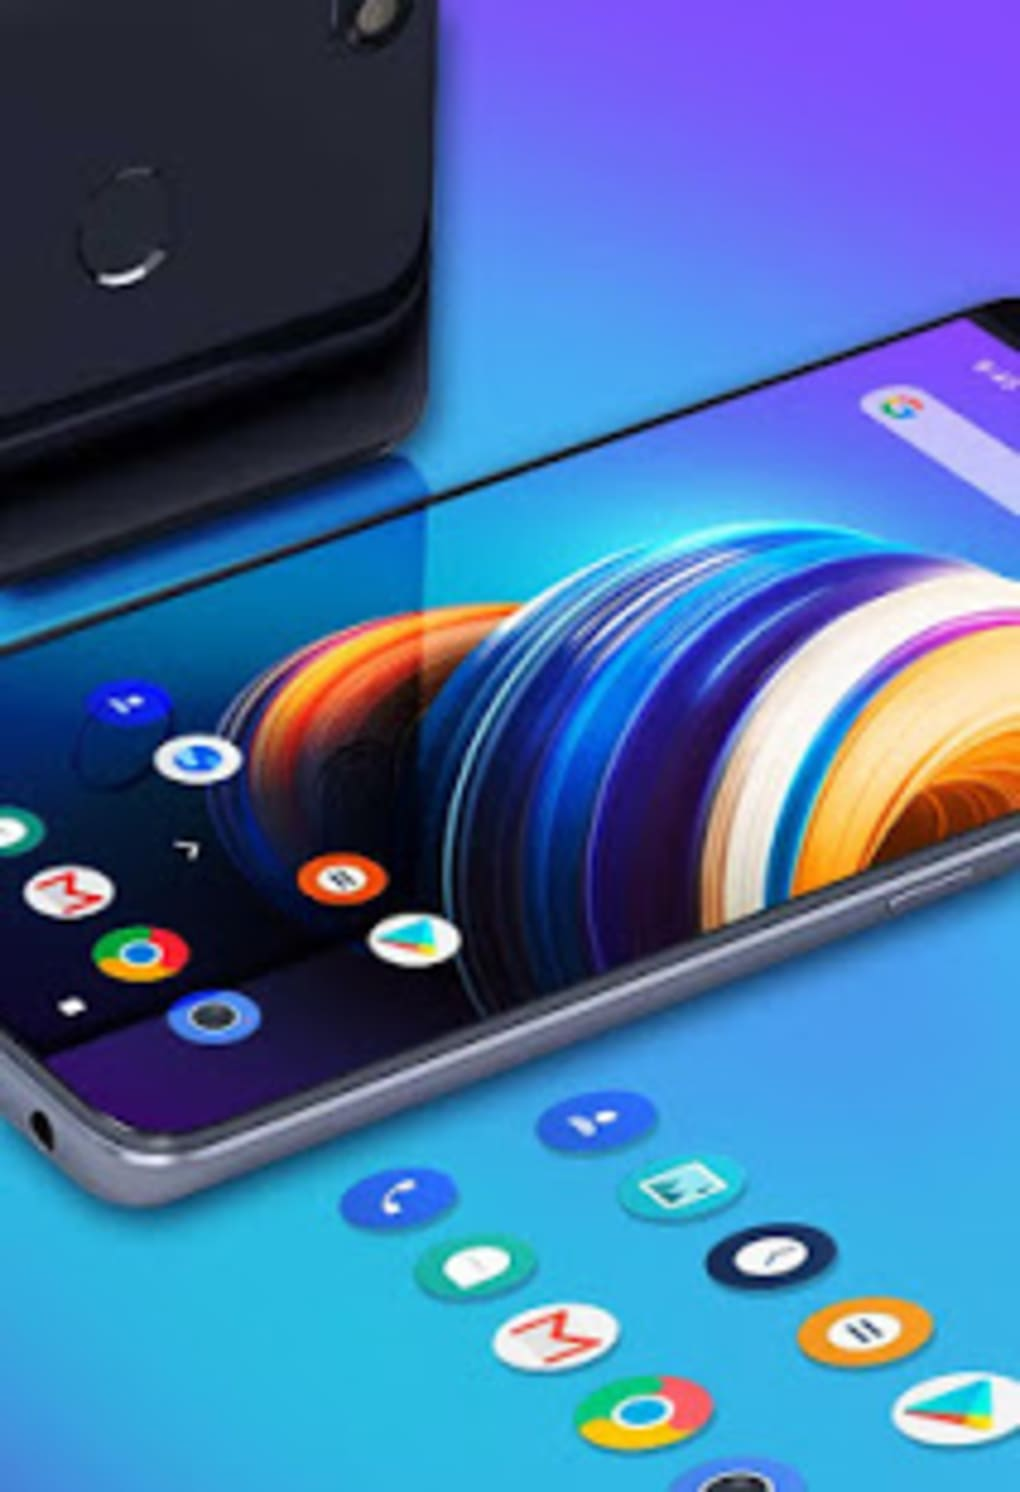 Abstract Colorful infinix note 5 theme for Android - Download